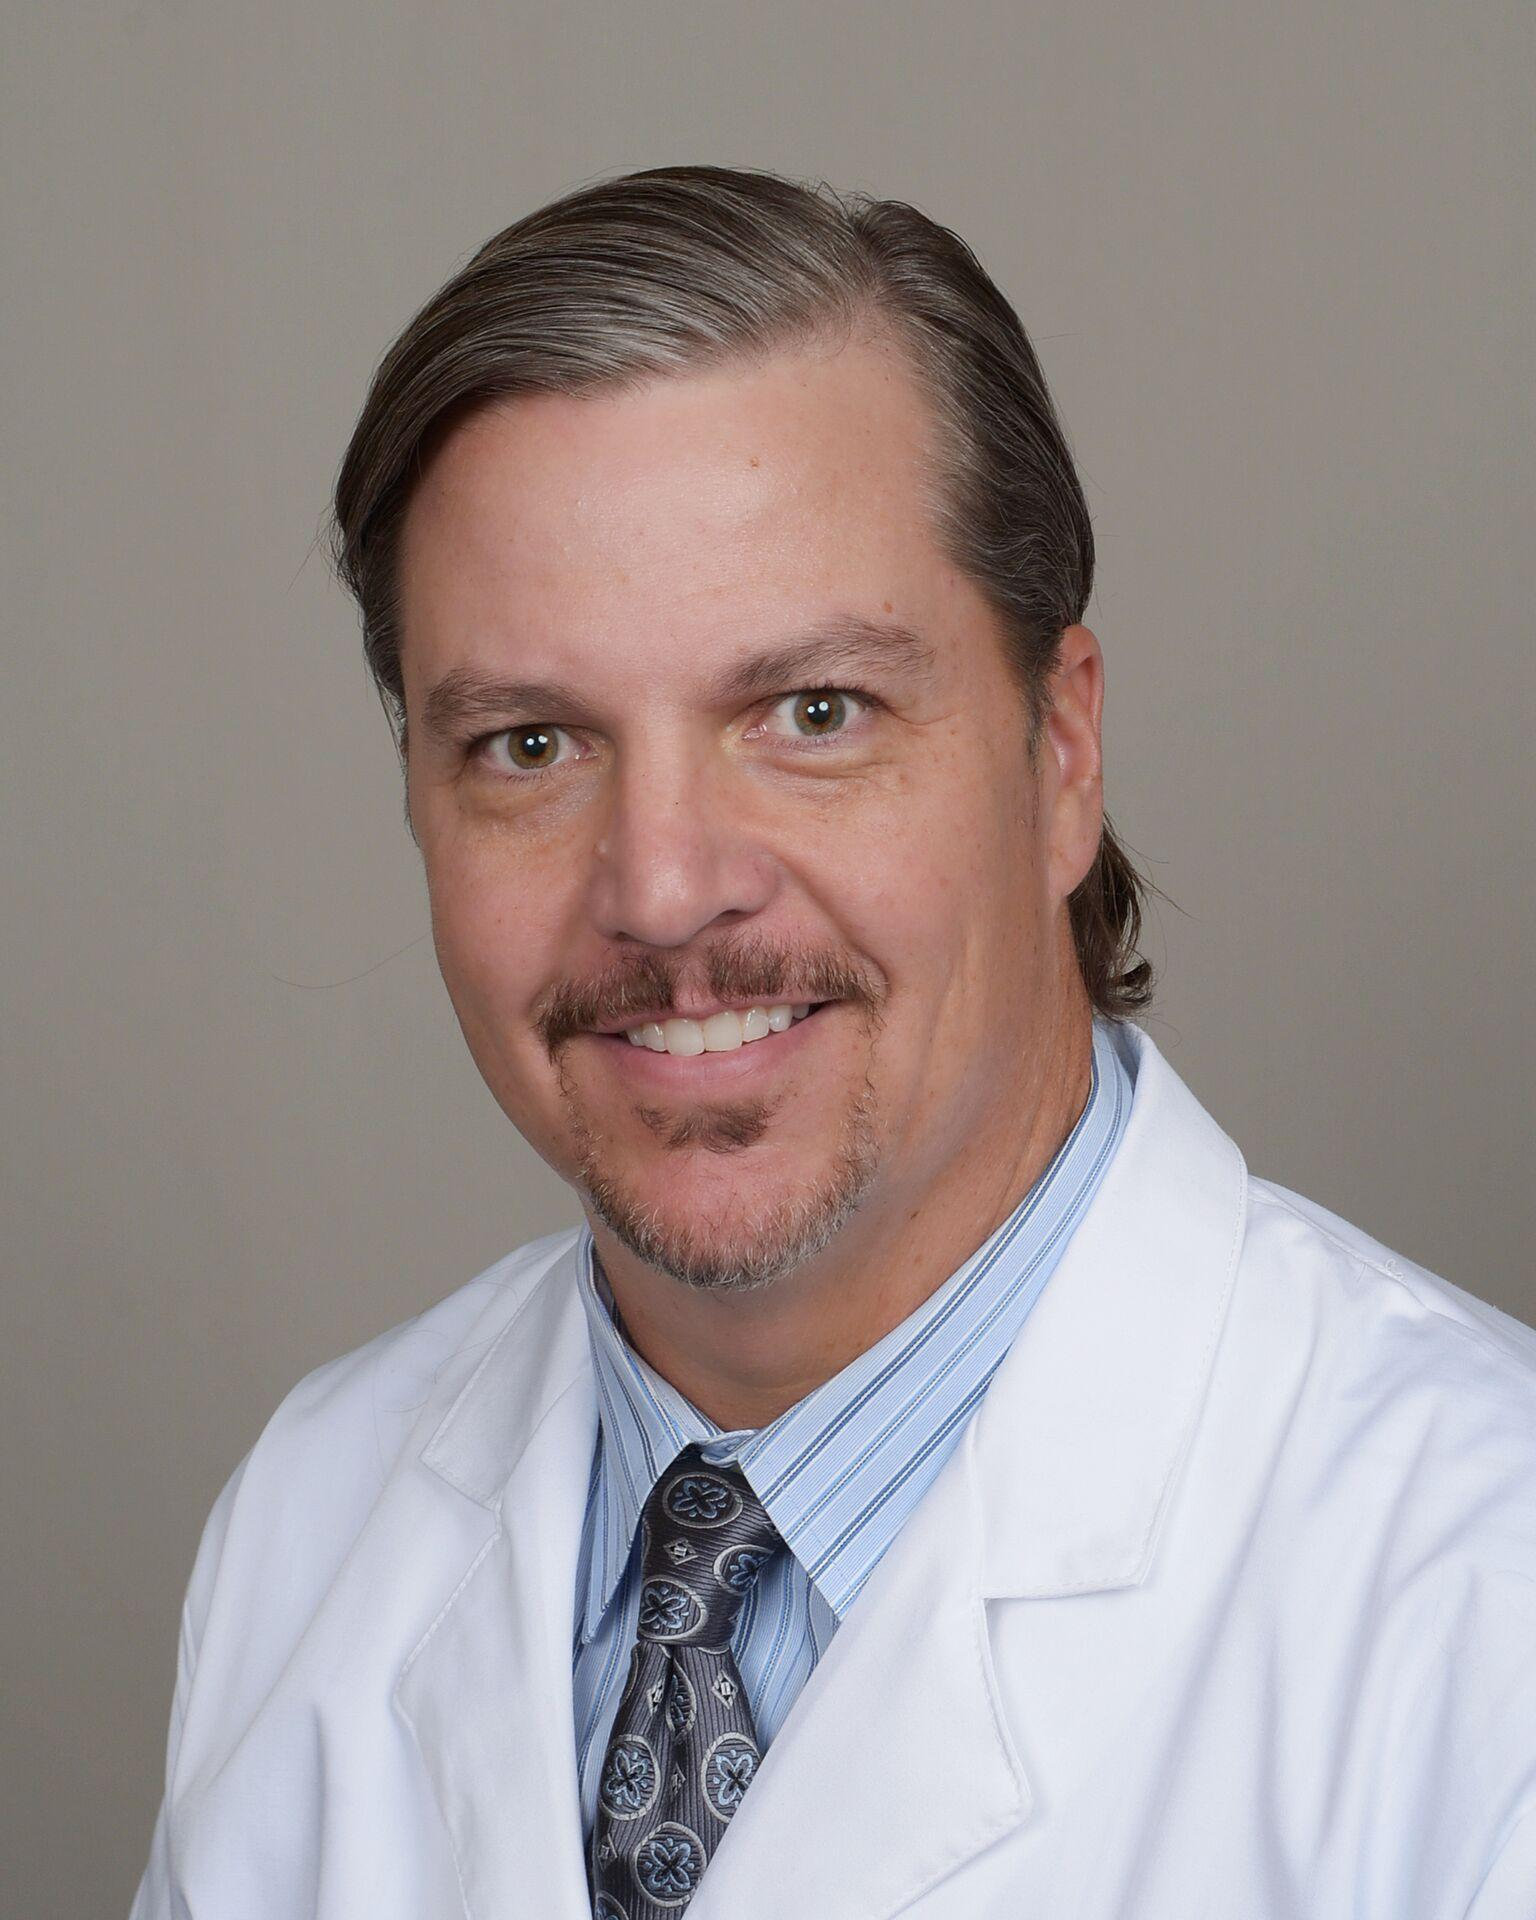 Profile Photo of Dr. Joe Mayes - None